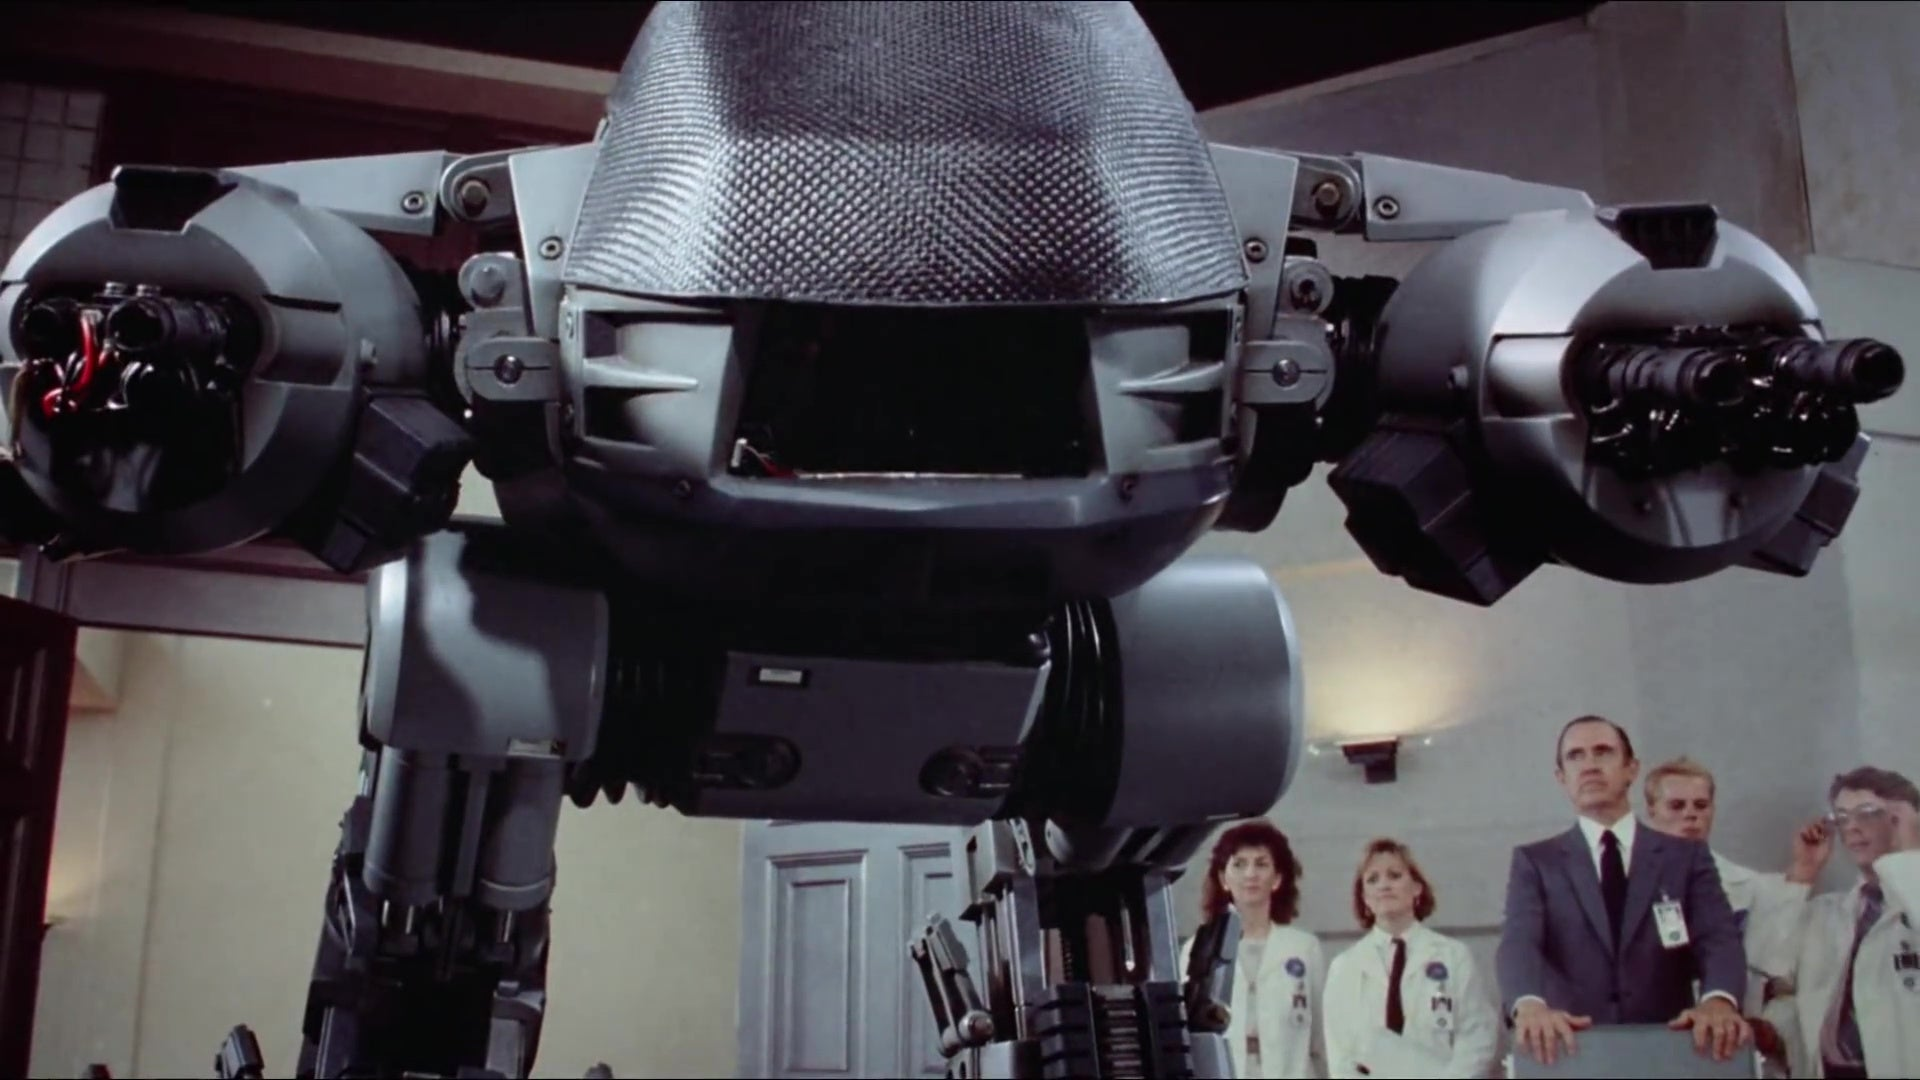 ED-209, a killer robot from the original RoboCop film.